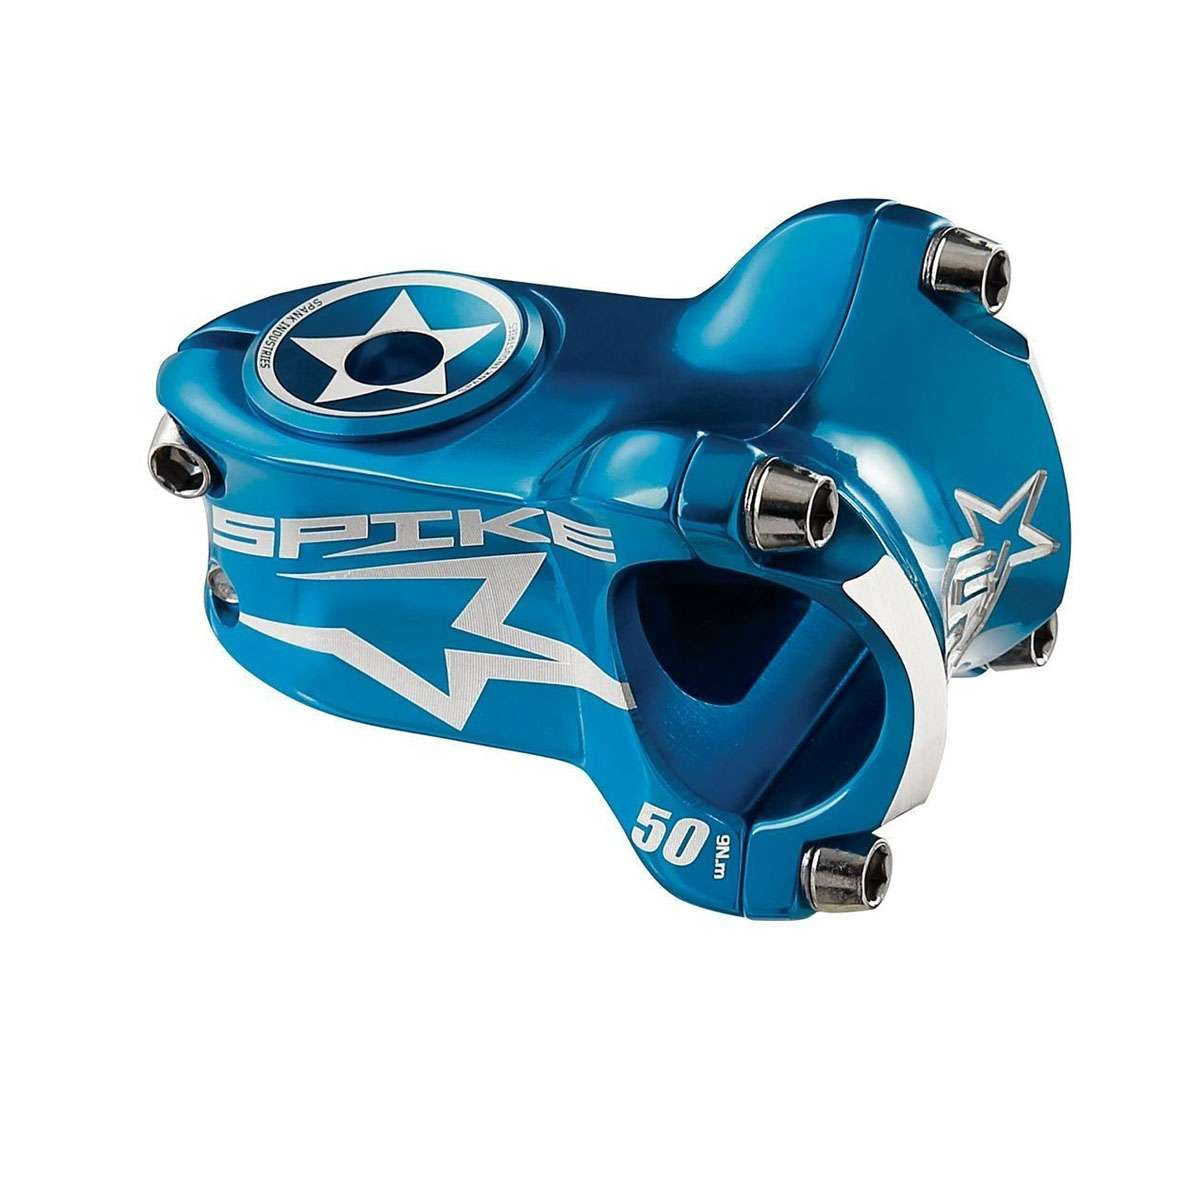 Spank Spike Race 2 Bicycle Stem - 50mm - Blue - E06SK02230AMSPK